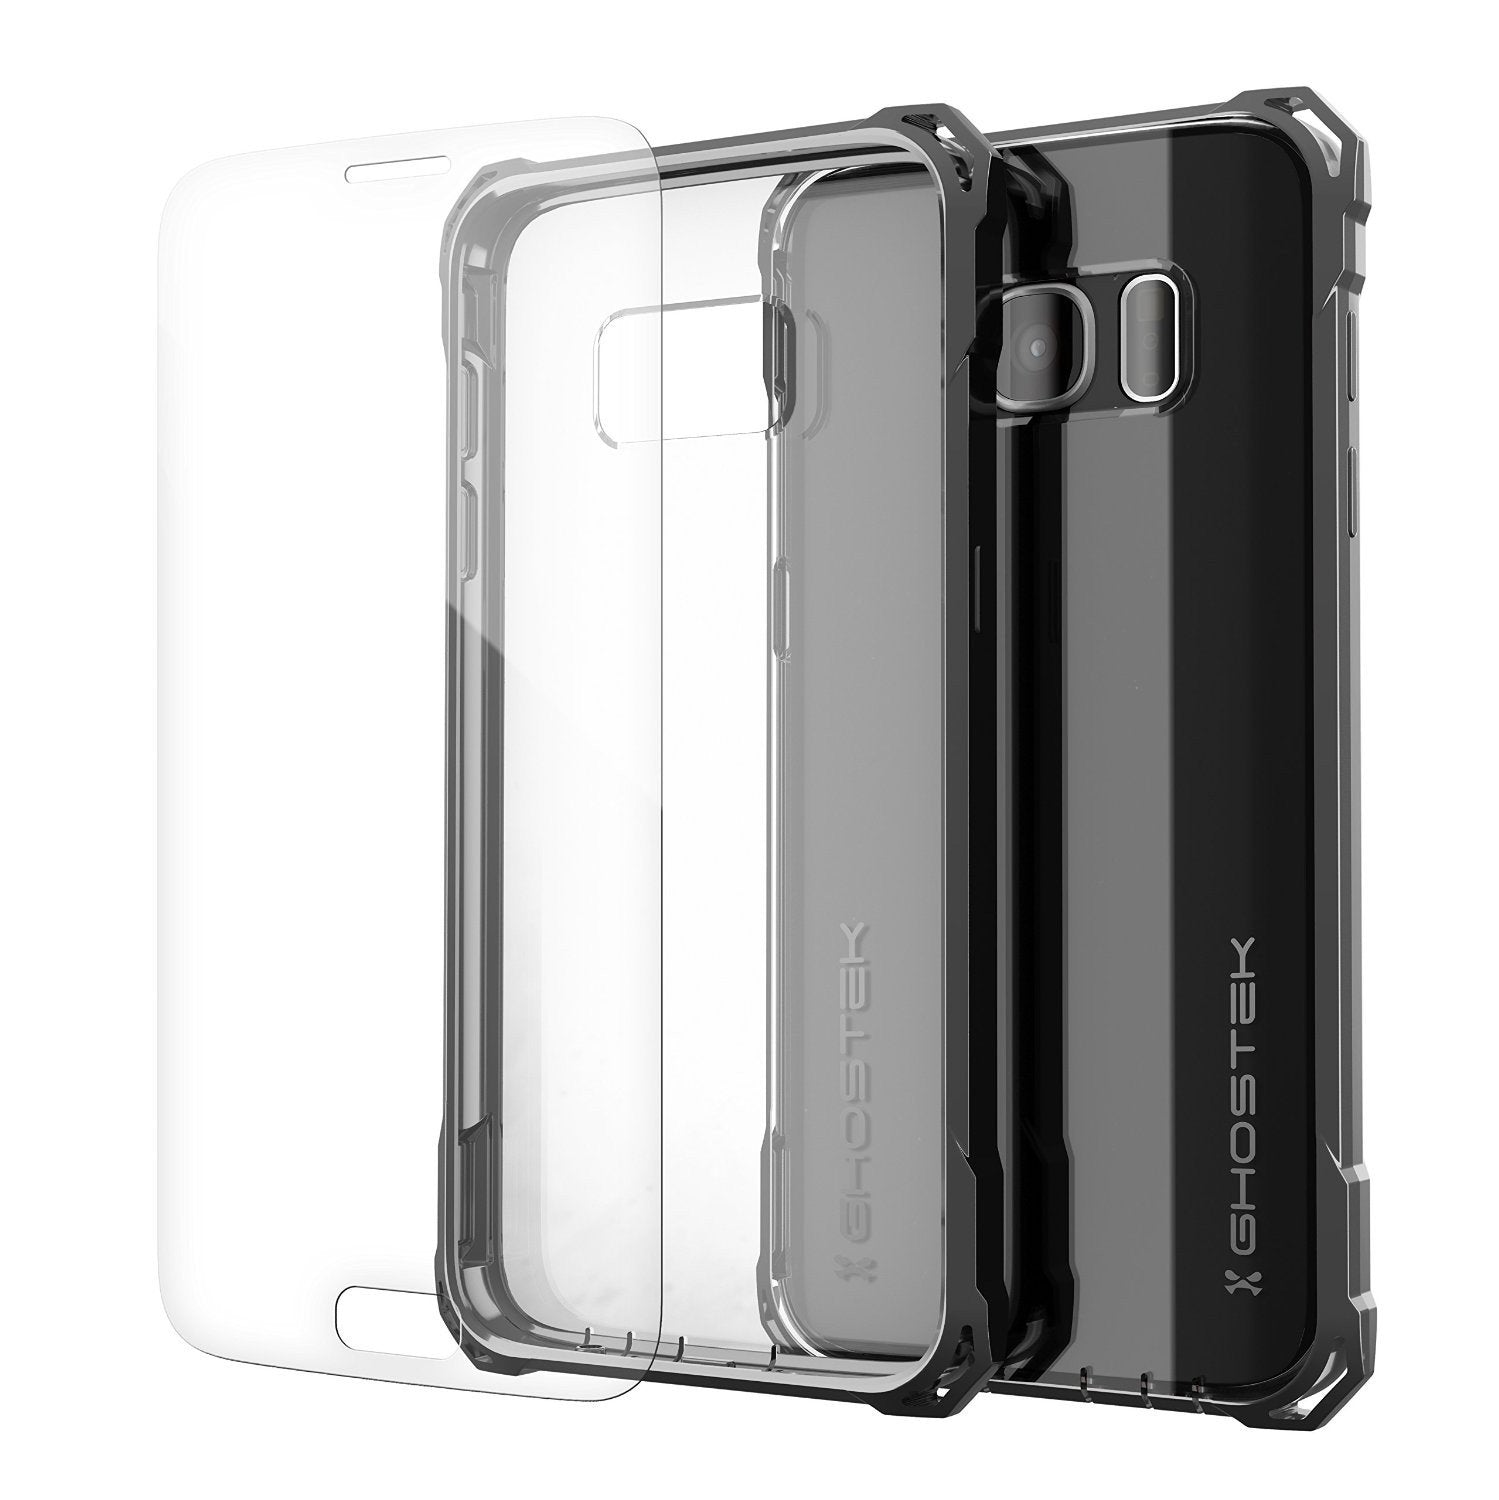 Galaxy S7 Case, Ghostek® Covert Dark Grey Series Premium Impact Cover | Lifetime Warranty Exchange